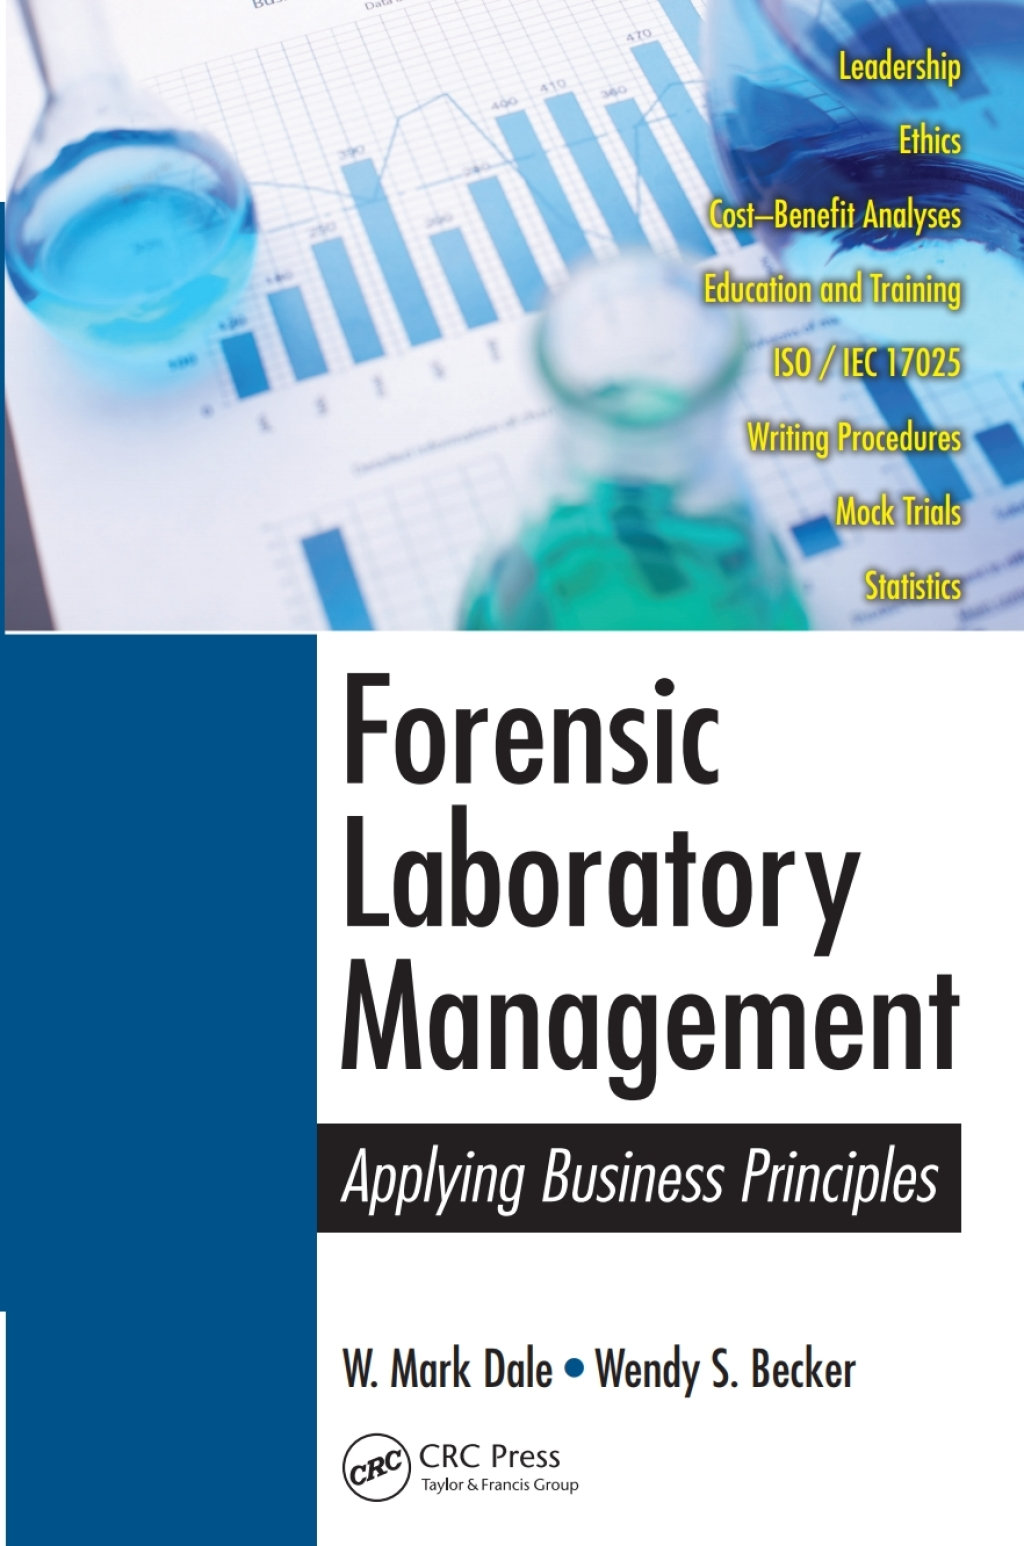 Forensic Laboratory Management (eBook Rental)